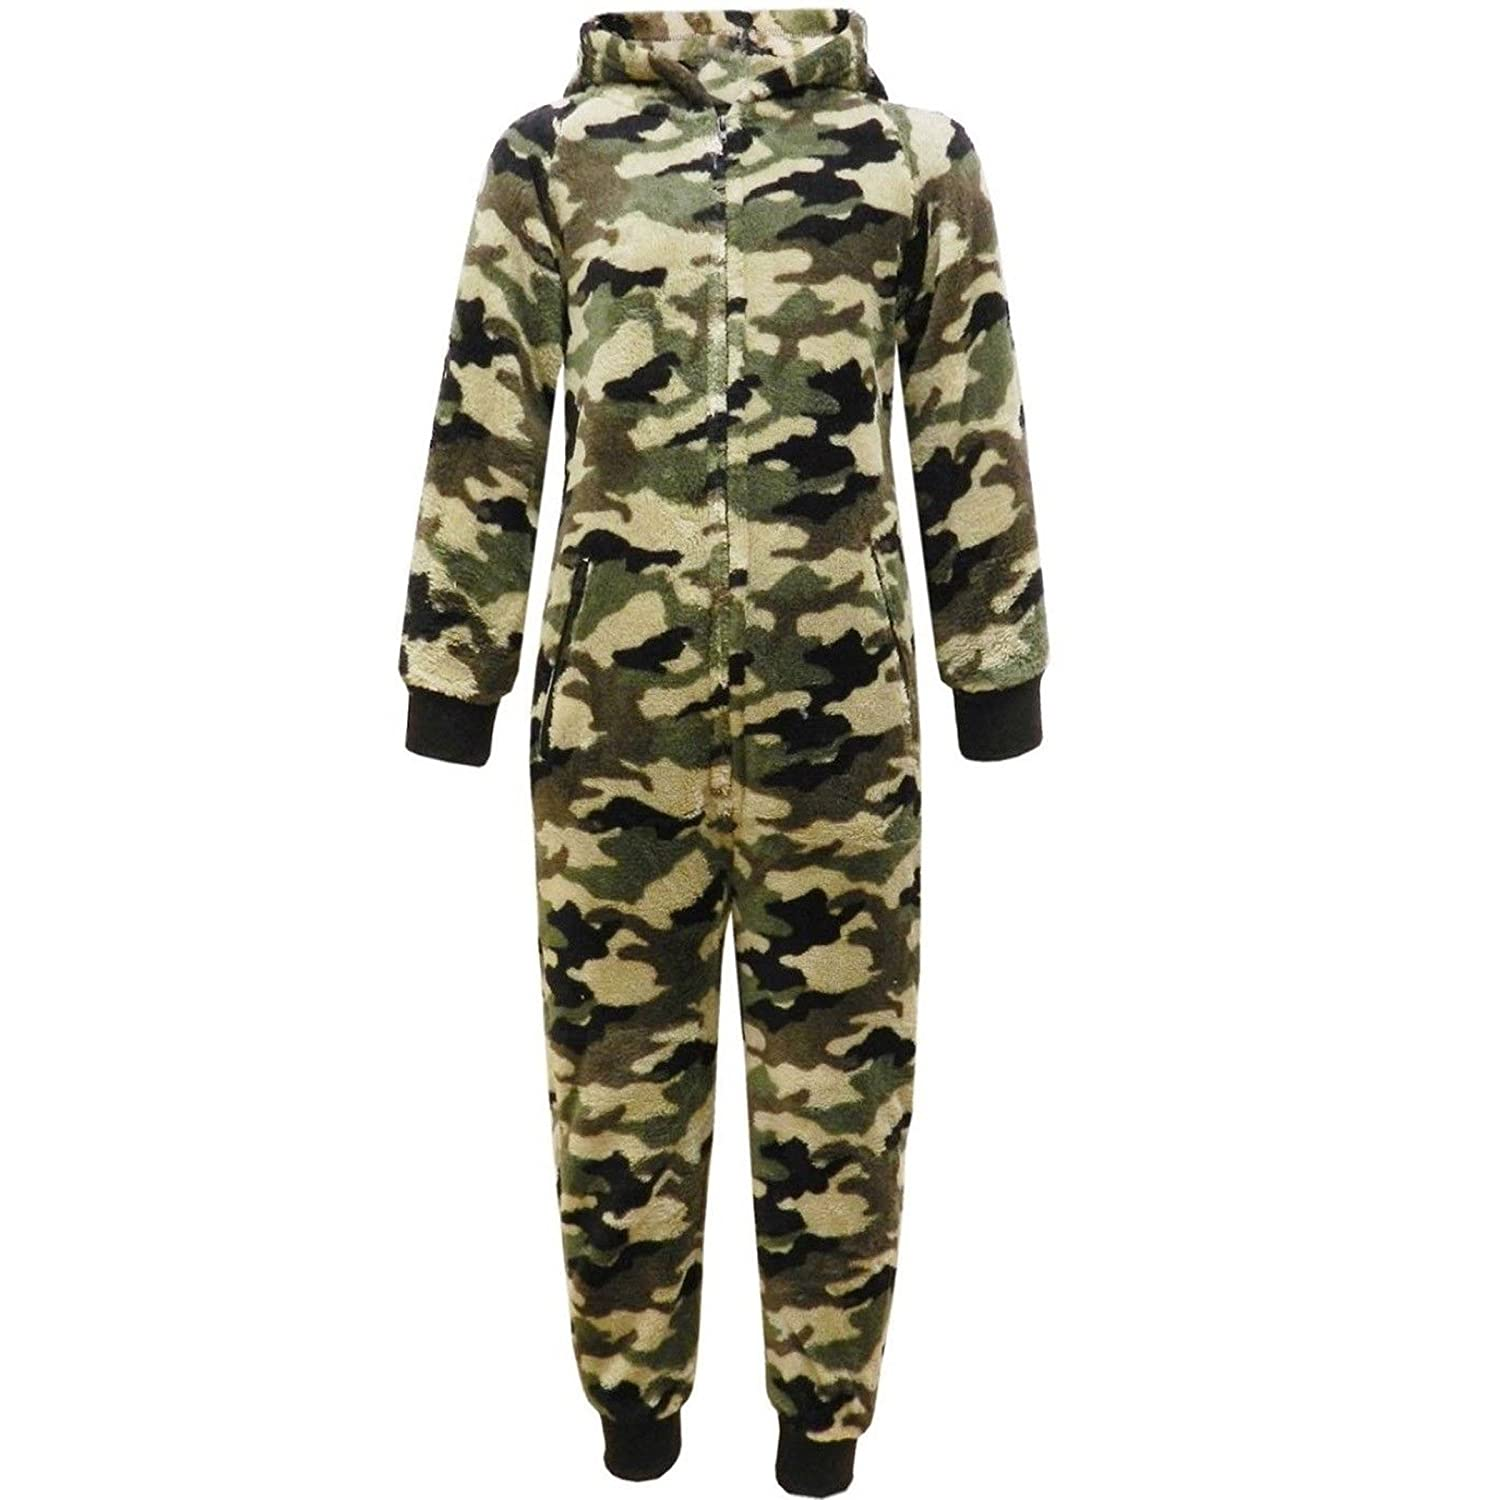 Farstowe Luxurious Super Thick Mens All in Ones Camouflage Onesies Adults Army Print One Piece Jumpsuit Size Medium/Large/X-Large